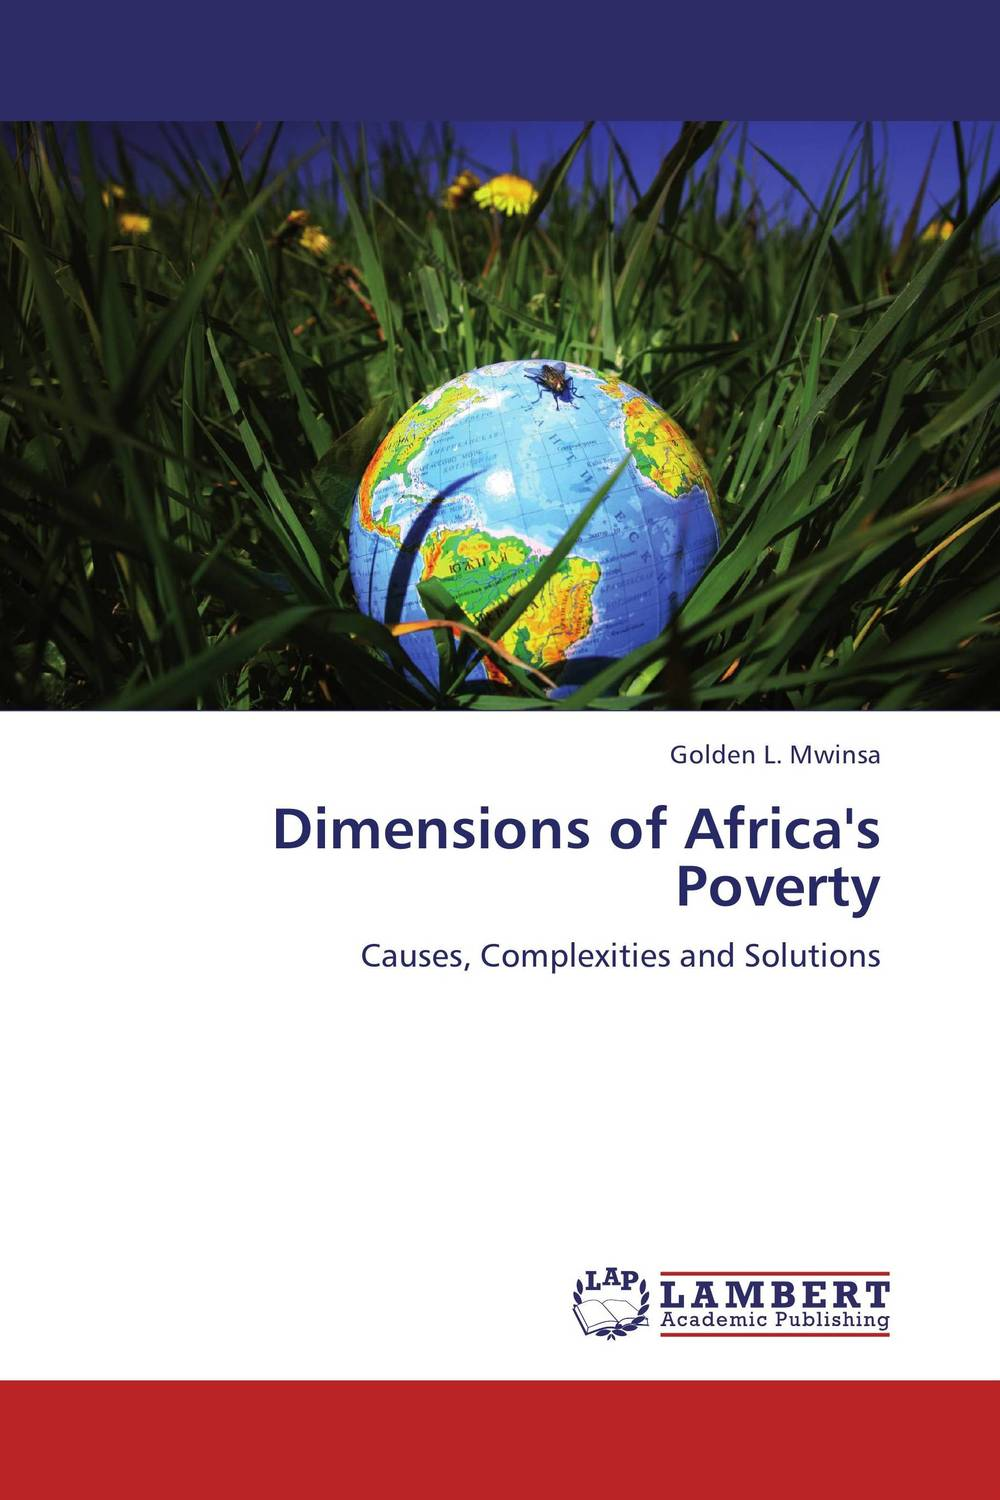 Dimensions of Africa's Poverty dimensions wreath of roses